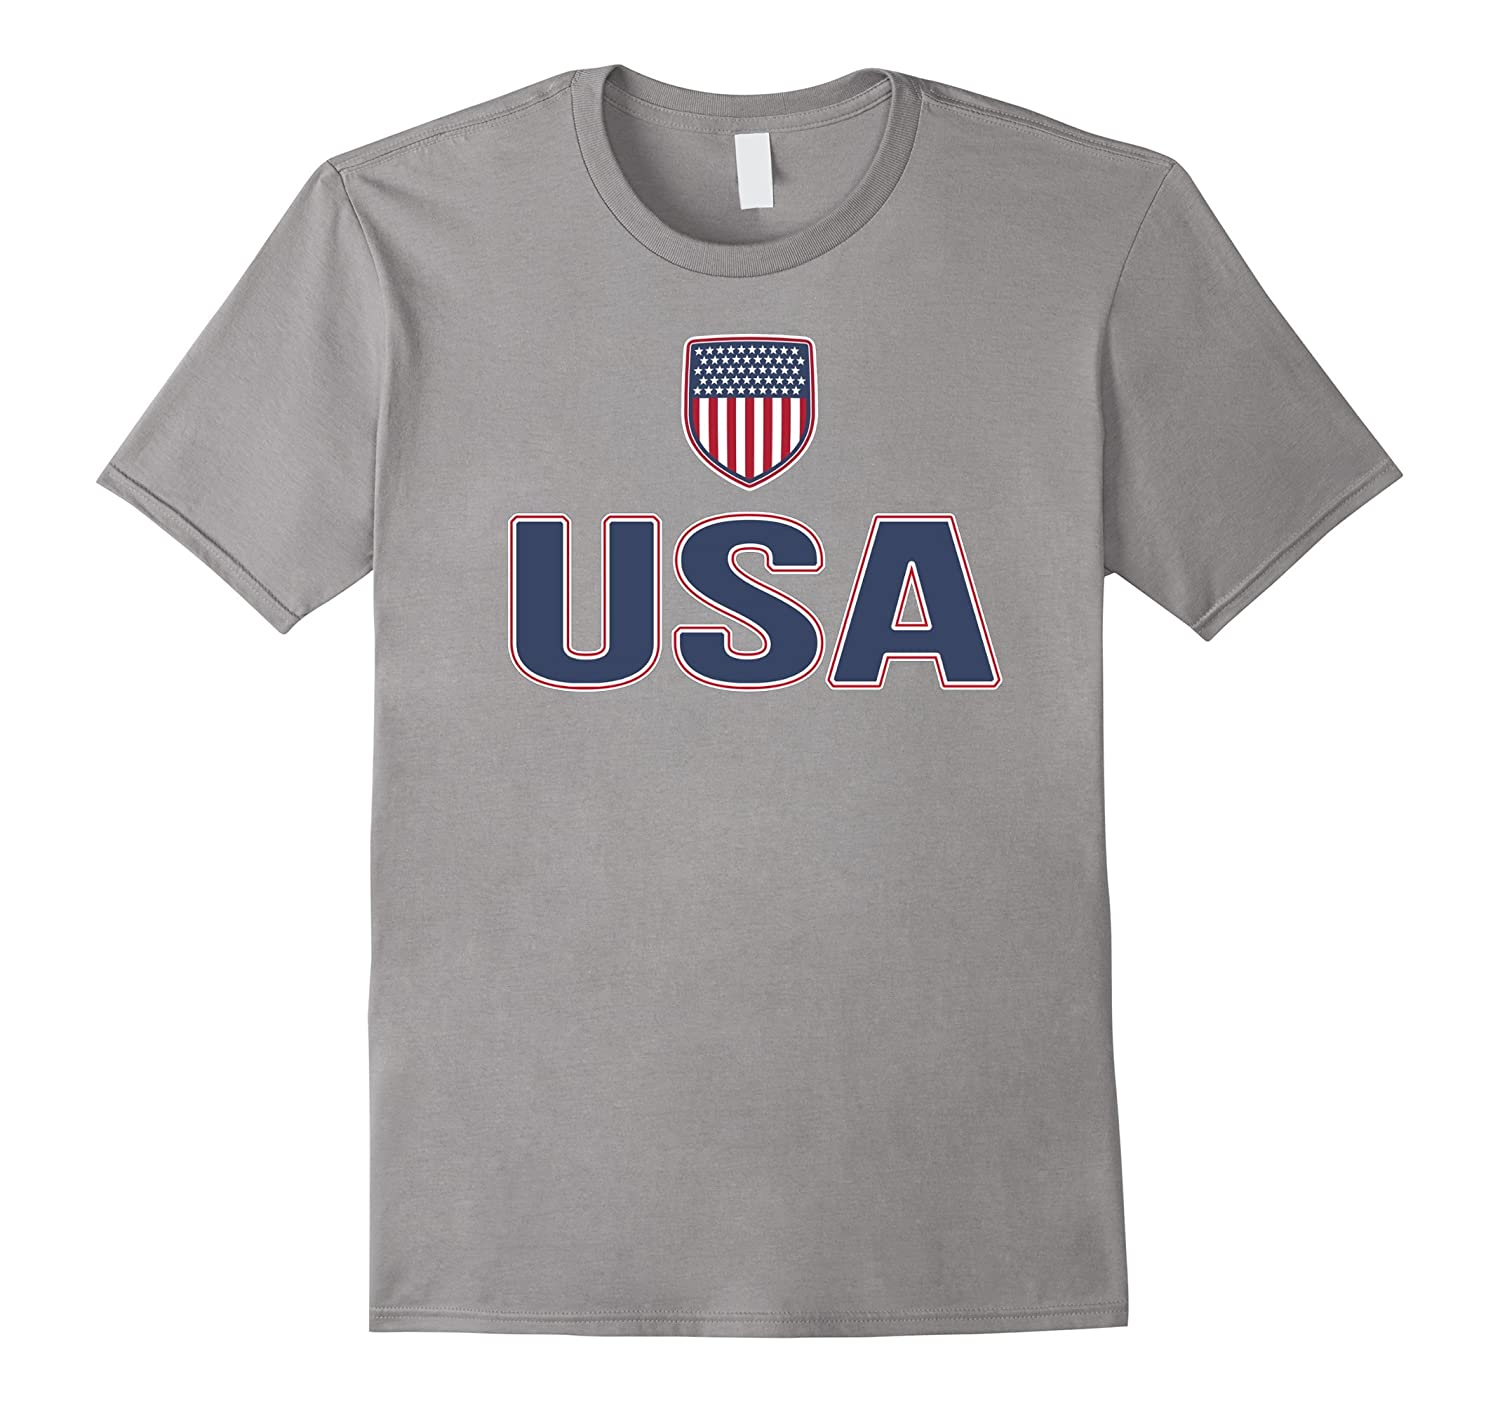 USA Red White Blue T-shirt American Flag USA Stars Stripes-Vaci